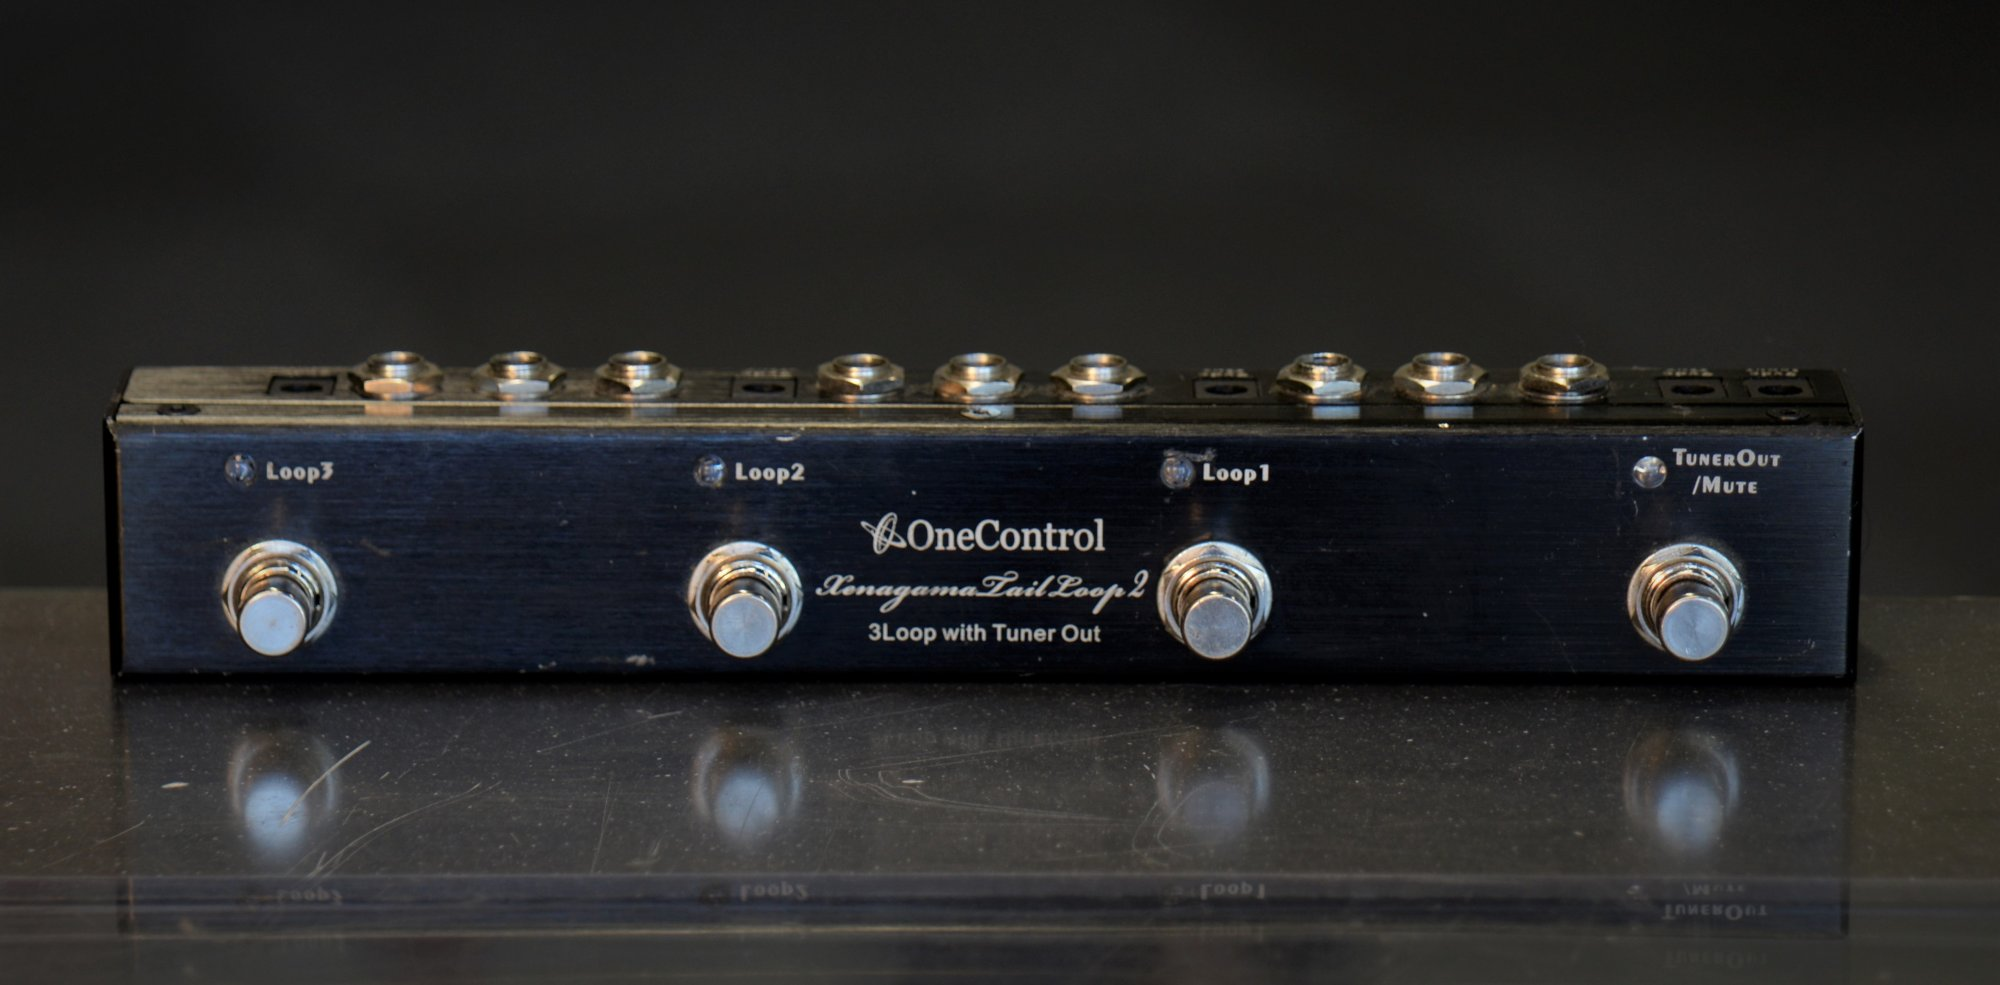 One Control Xenagama Tail Loop 2 - USED